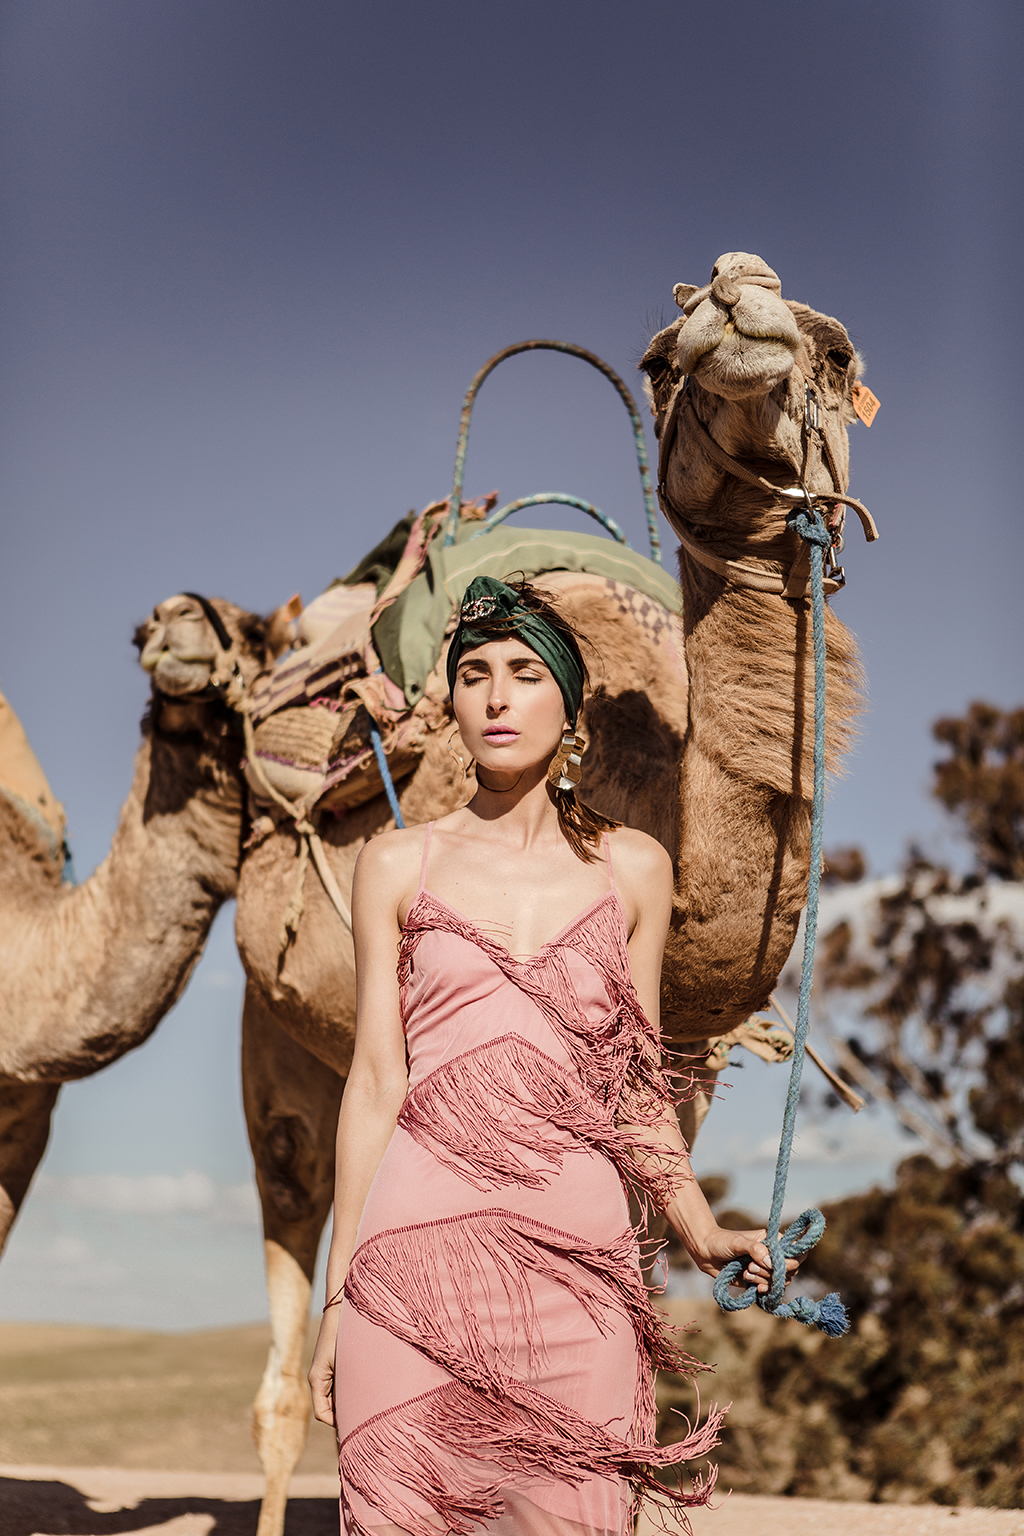 elena-engels-fotografie-marrakech-blogger-travel-shooting-reise-lapause_camp024